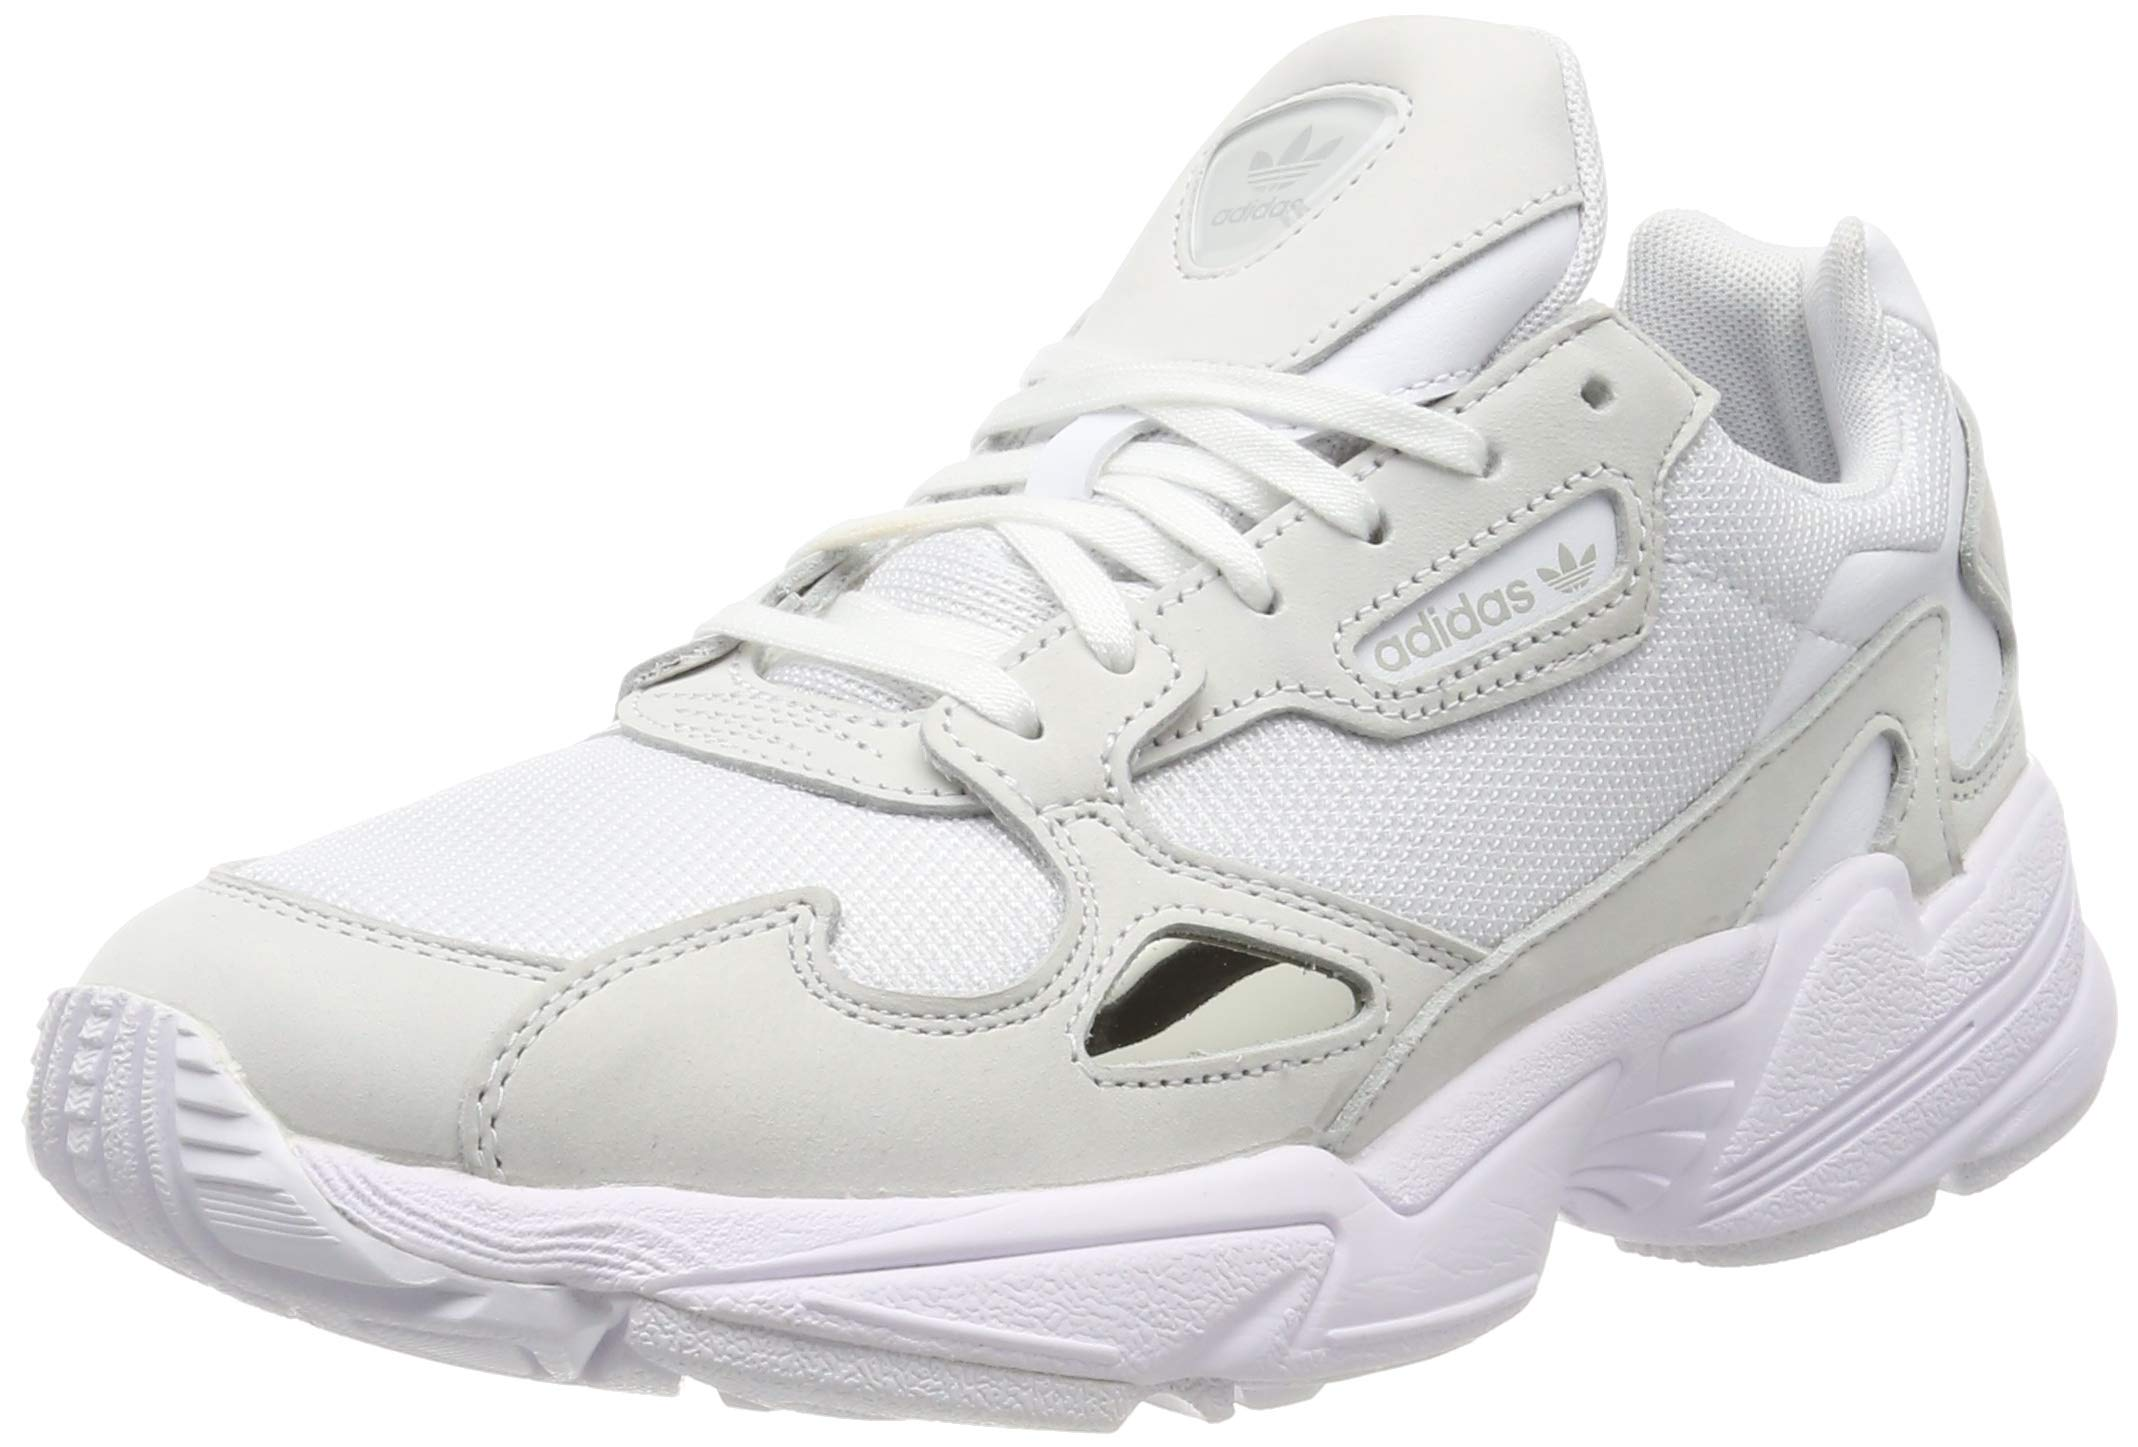 entrenador almohadilla gasolina  adidas Originals Women's Falcon Sneakers Leather White in Size US 7.5 - Buy  Online in Dominica.   [missing {{category}} value] Products in Dominica -  See Prices, Reviews and Free Delivery over EX$200   Desertcart